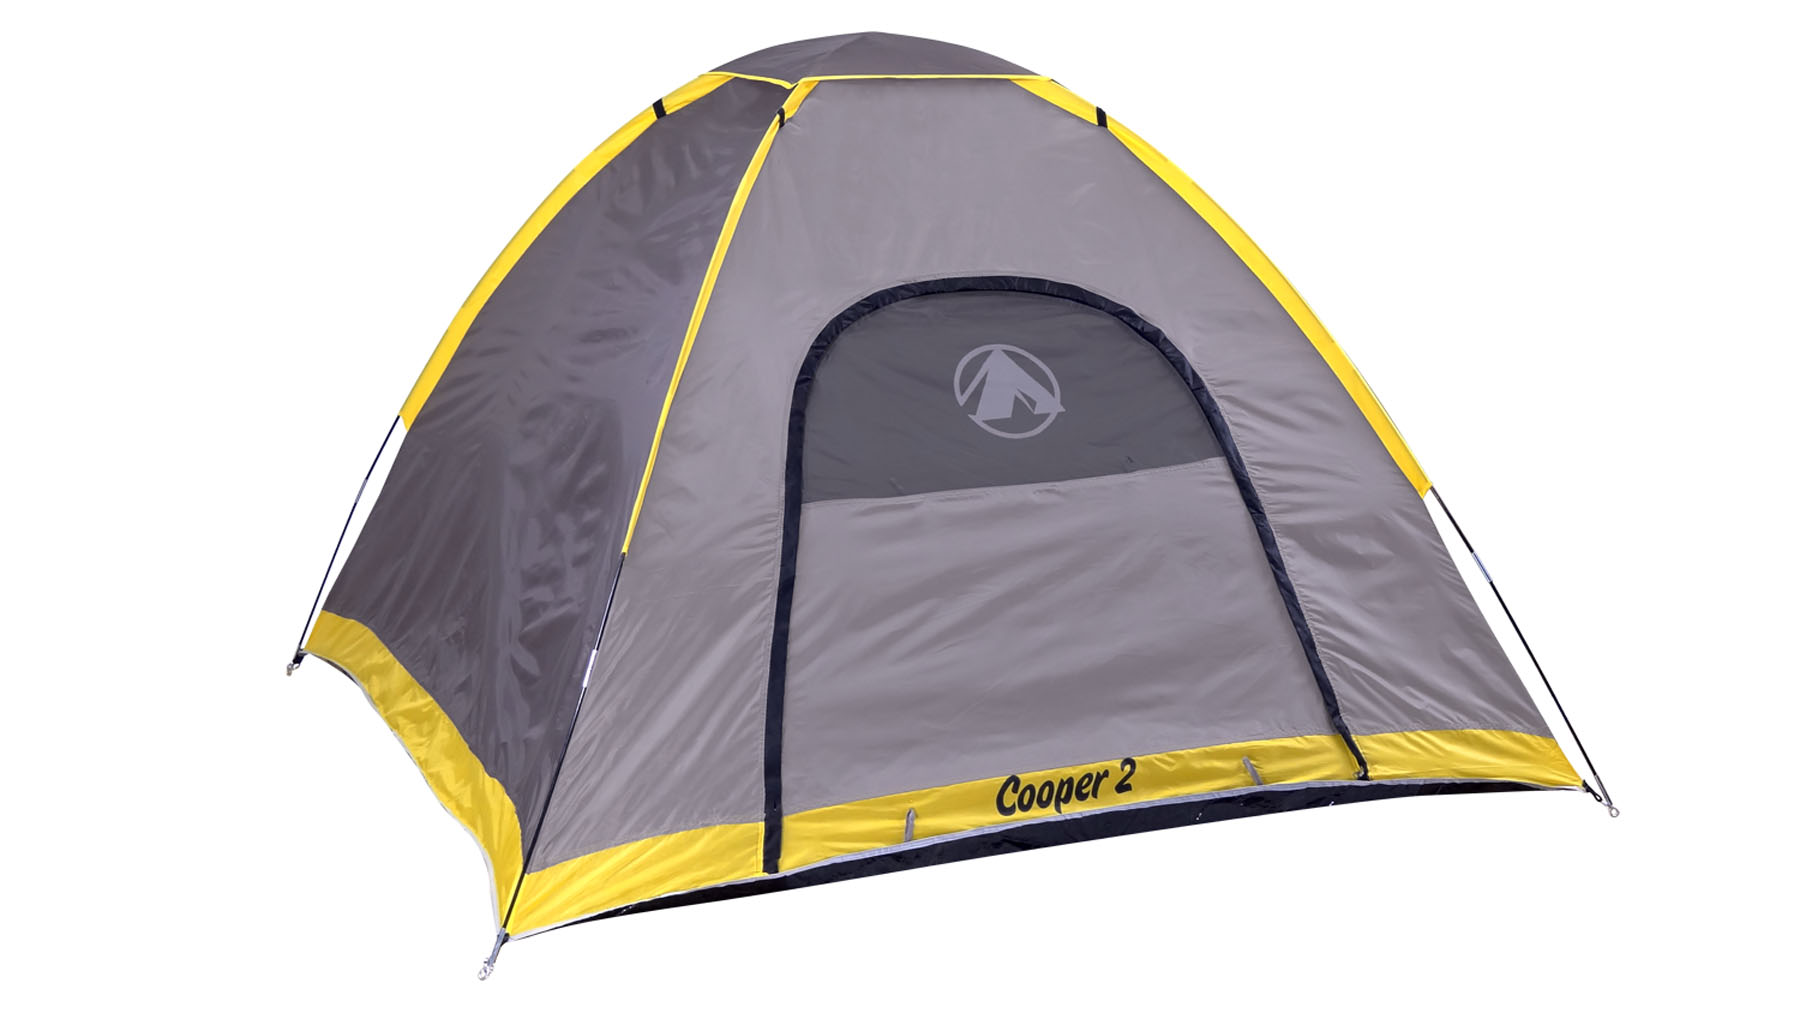 GigaTent Cooper 2 7' x 7' Dome Tent, Sleeps 3 4 by GigaTent